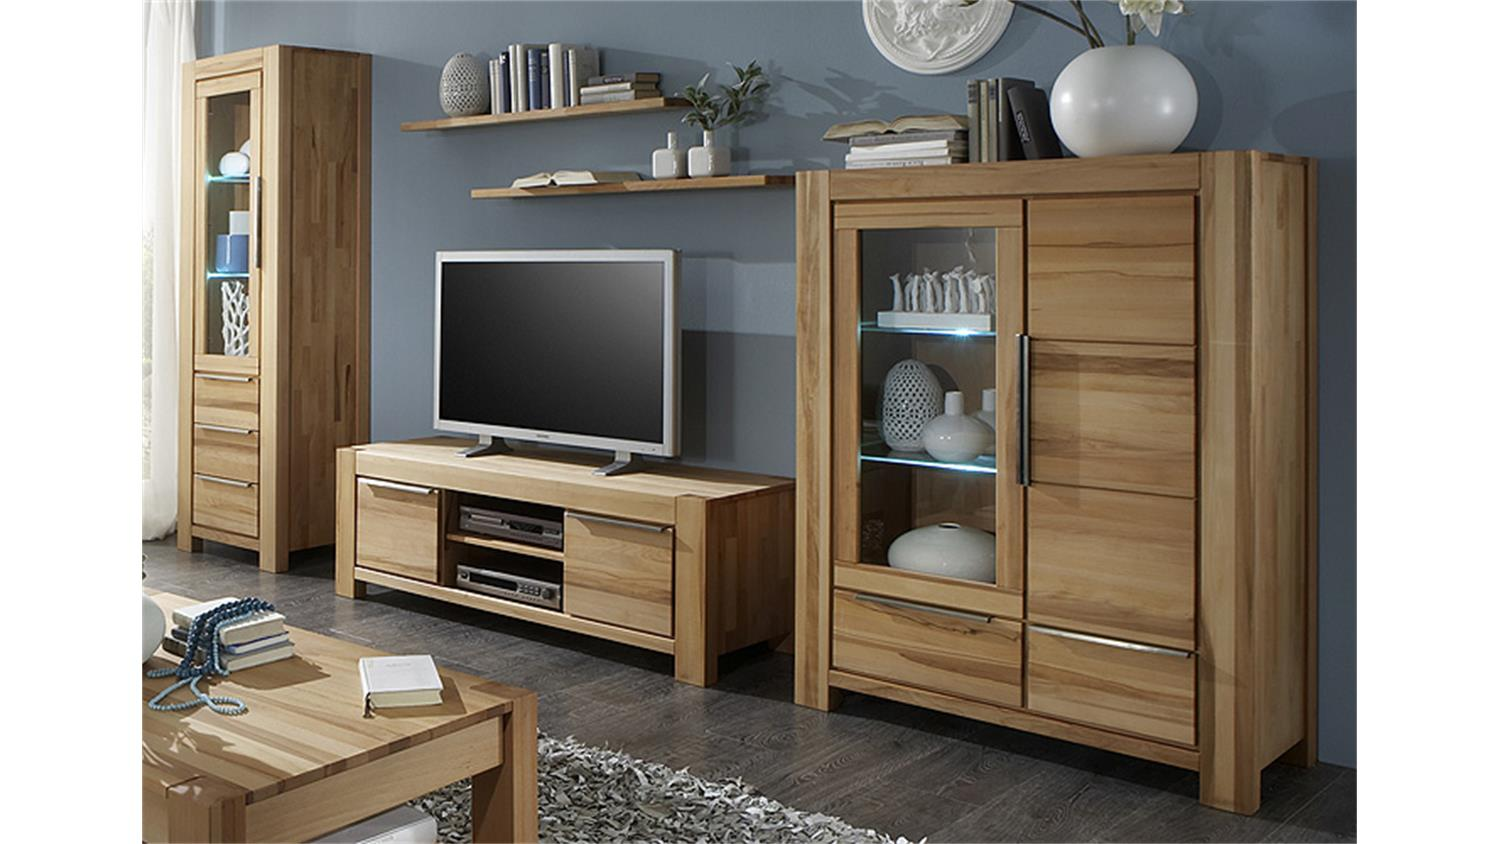 moebel de wohnwand innen und m belideen. Black Bedroom Furniture Sets. Home Design Ideas